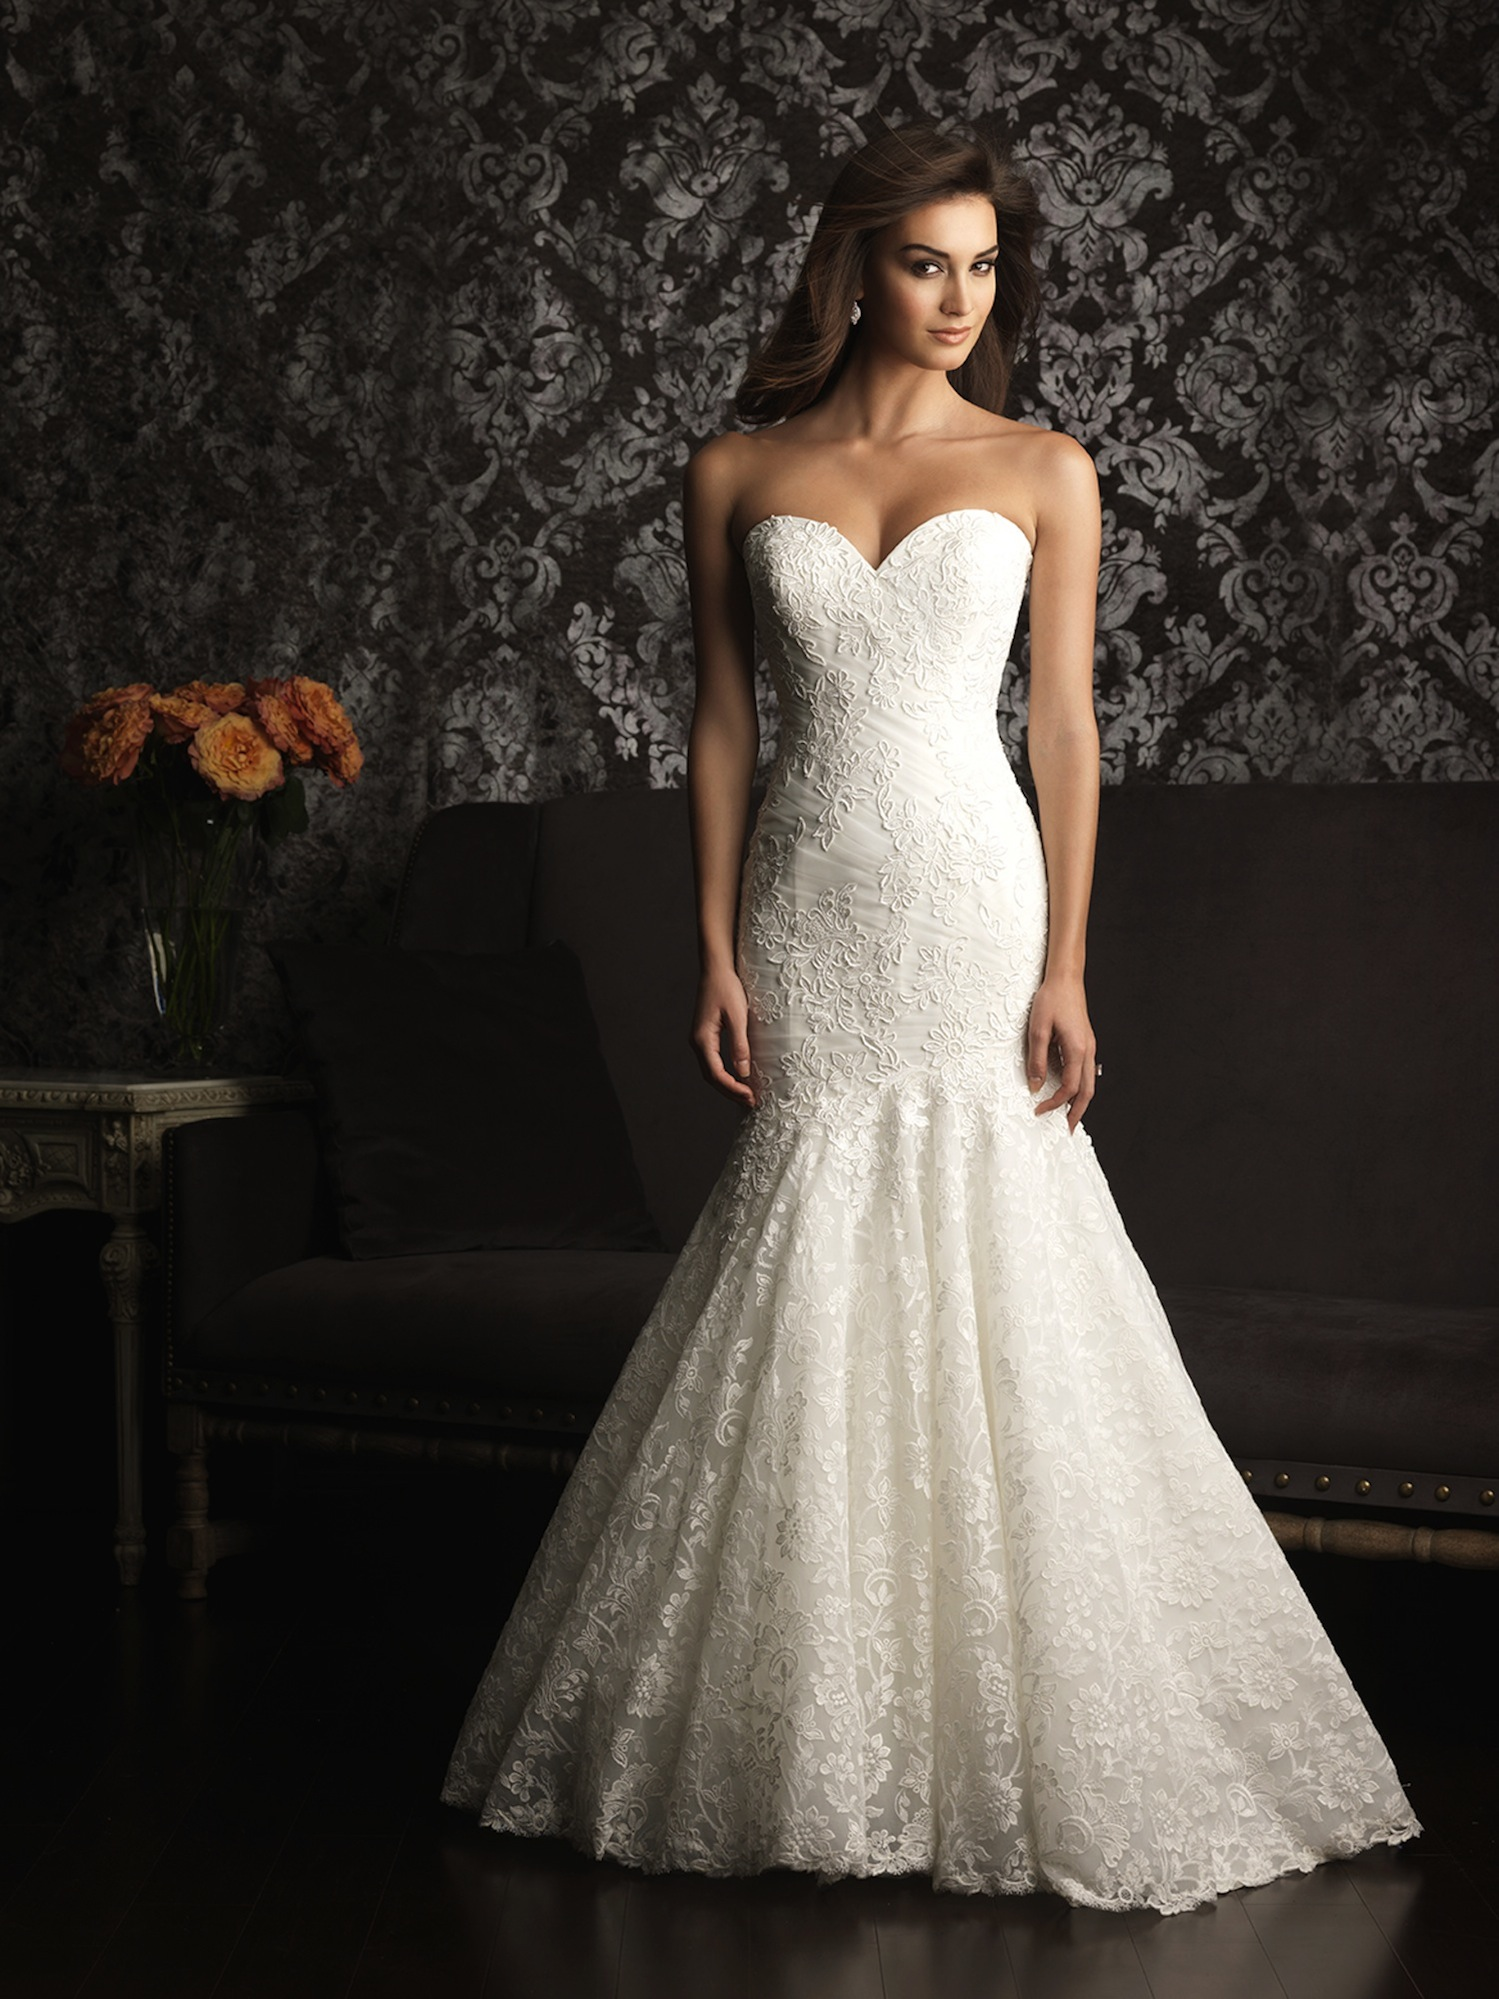 allure bridals wedding dress bridal gown allure collection 2013 9023f. Black Bedroom Furniture Sets. Home Design Ideas